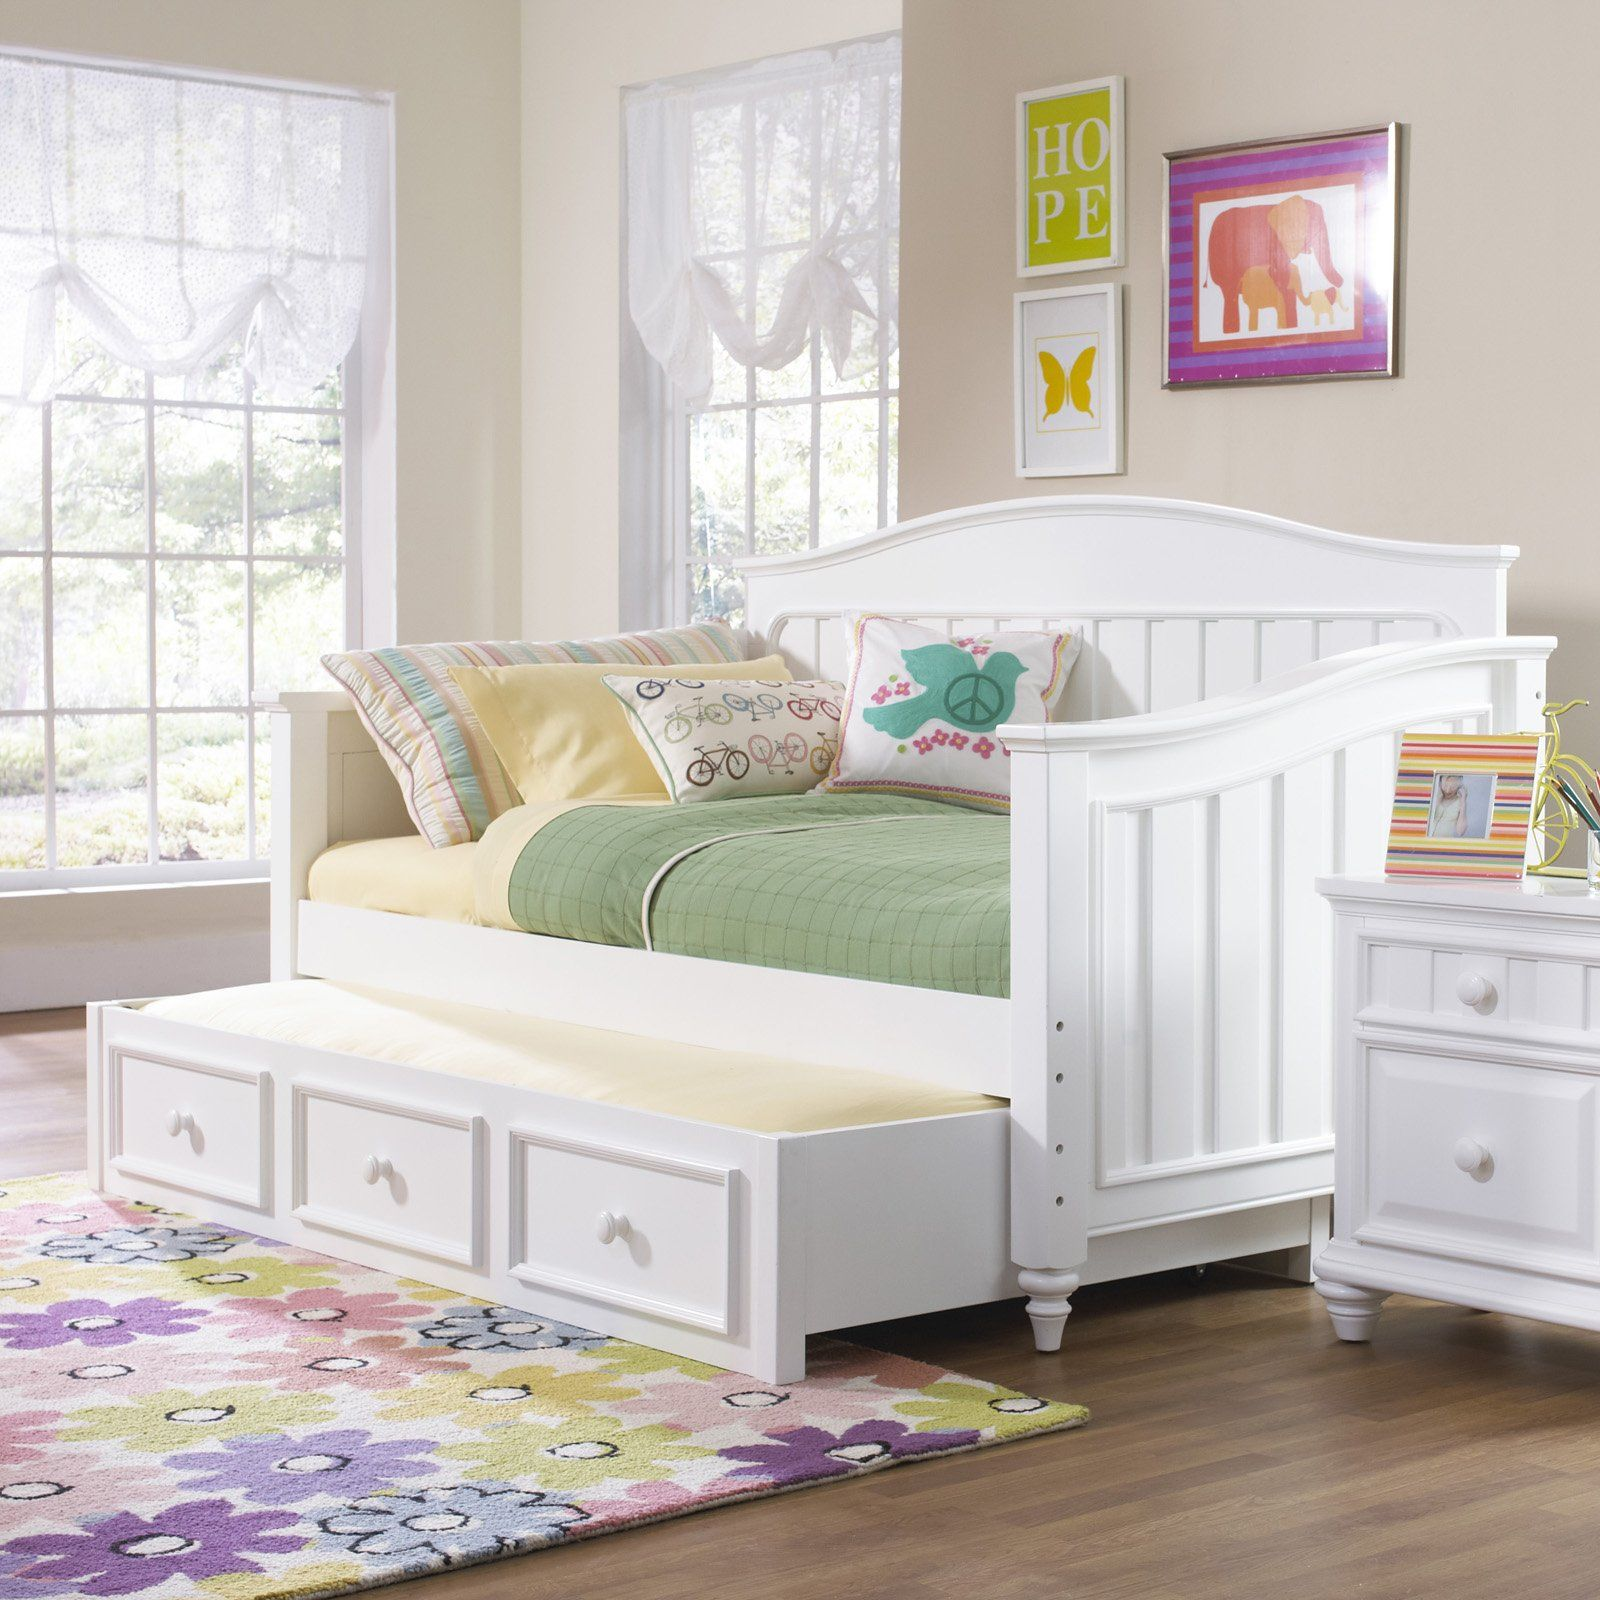 SummerTime Daybed White Even in the chilliest of